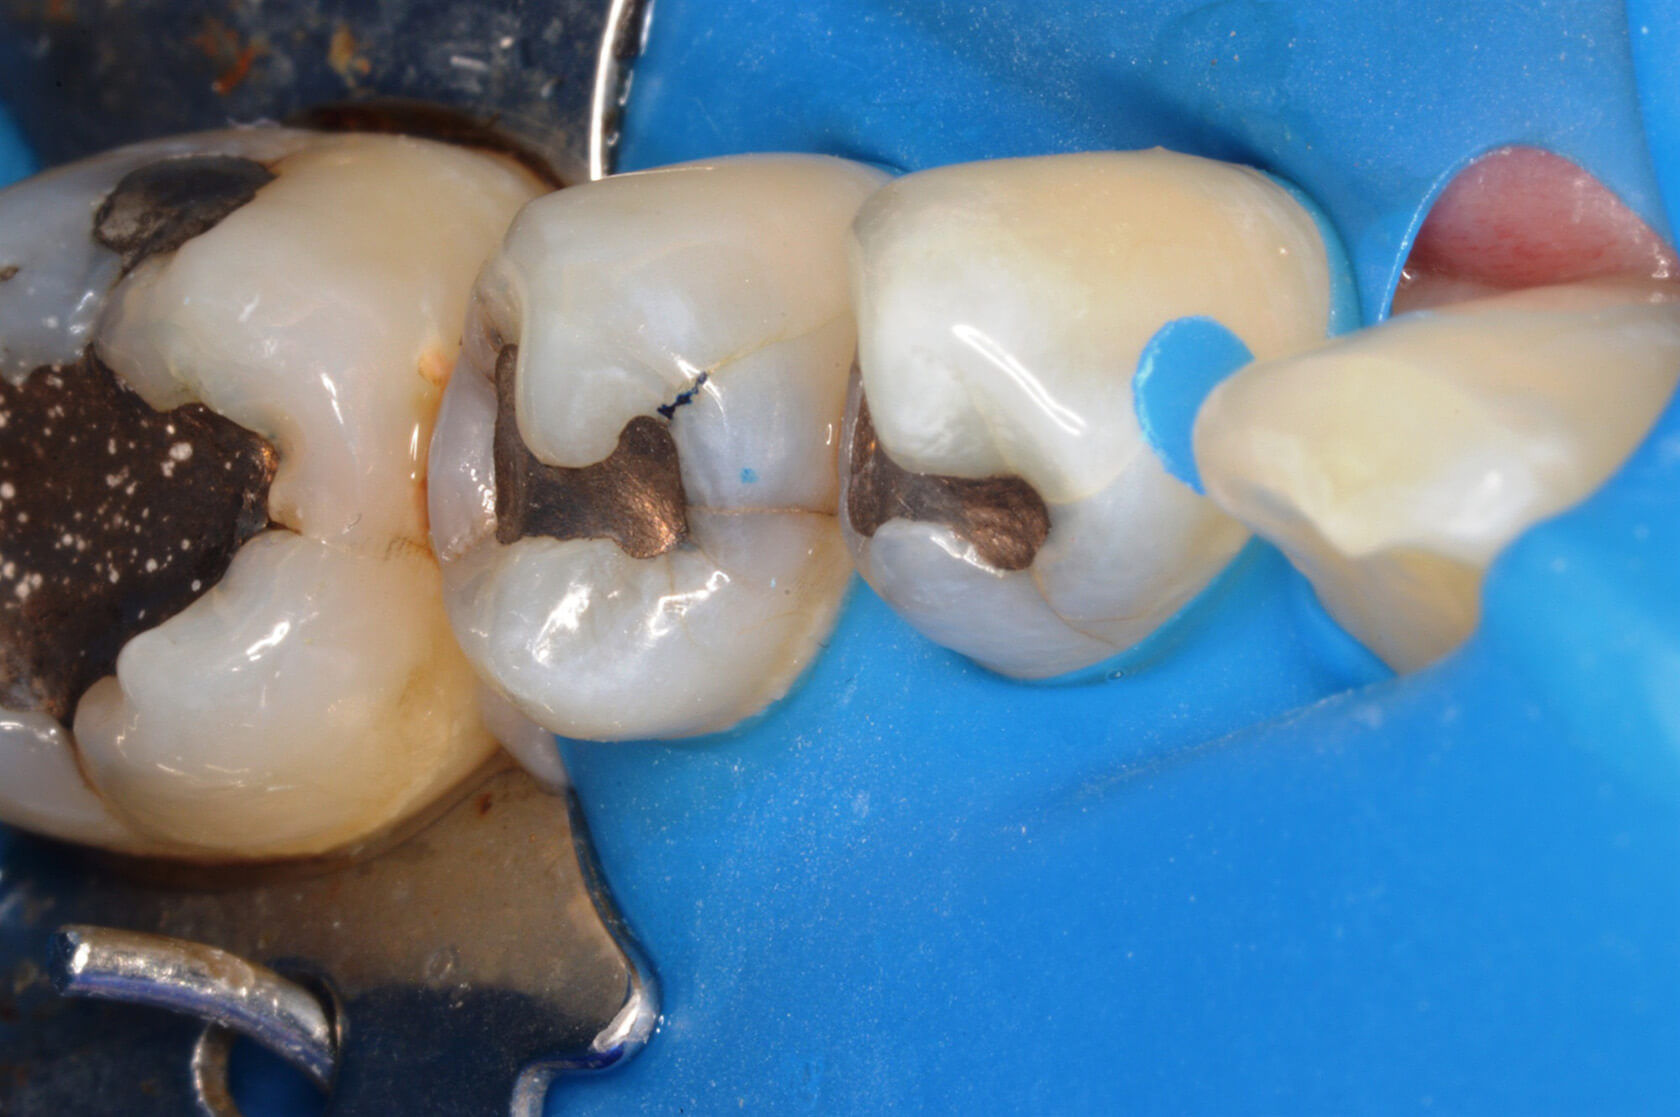 Using Occlusal Stamping Technique With The Greater Curve